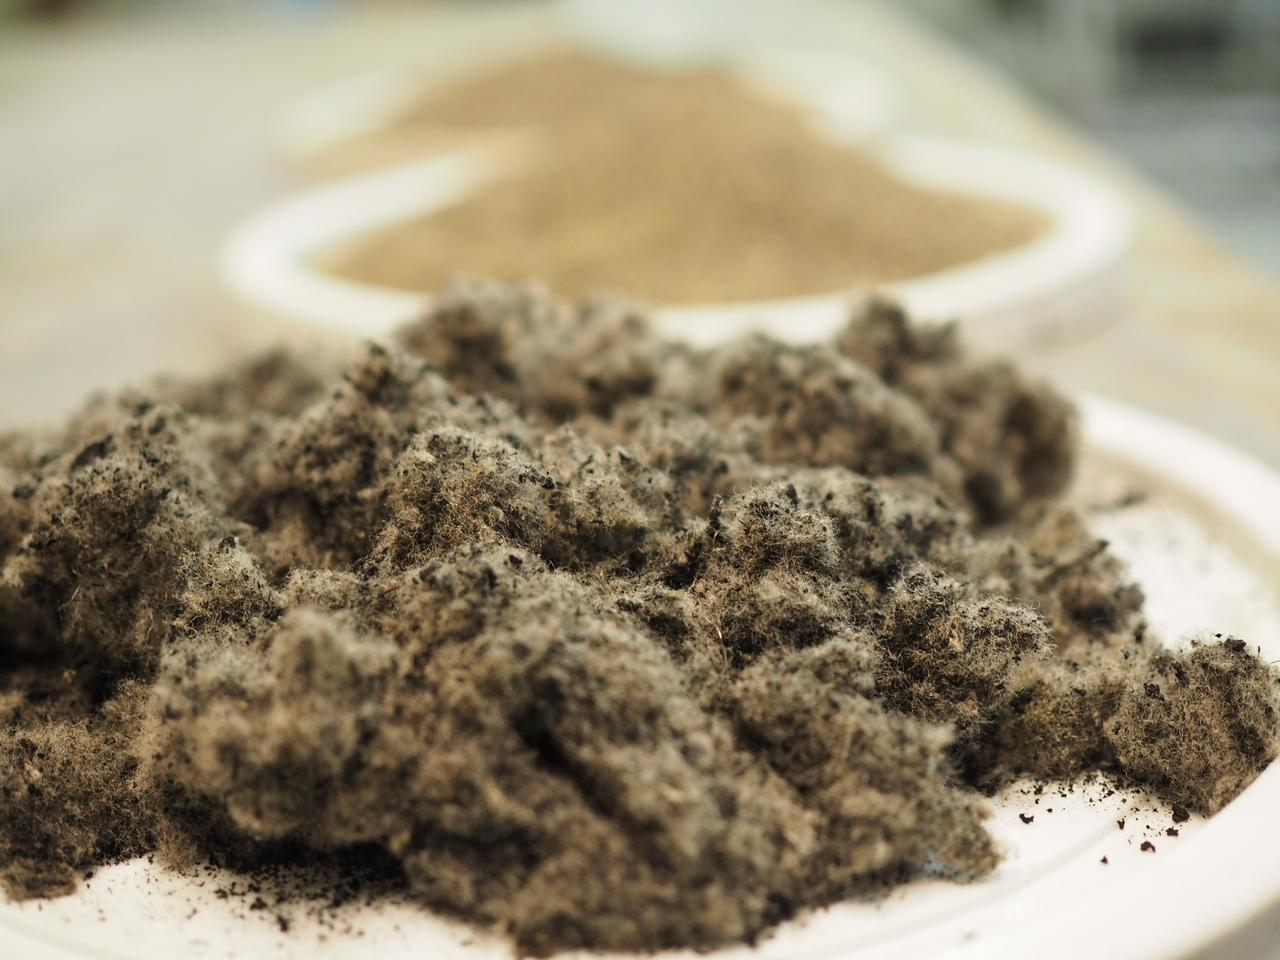 Some of the polymer fibers obtained from shredded tires